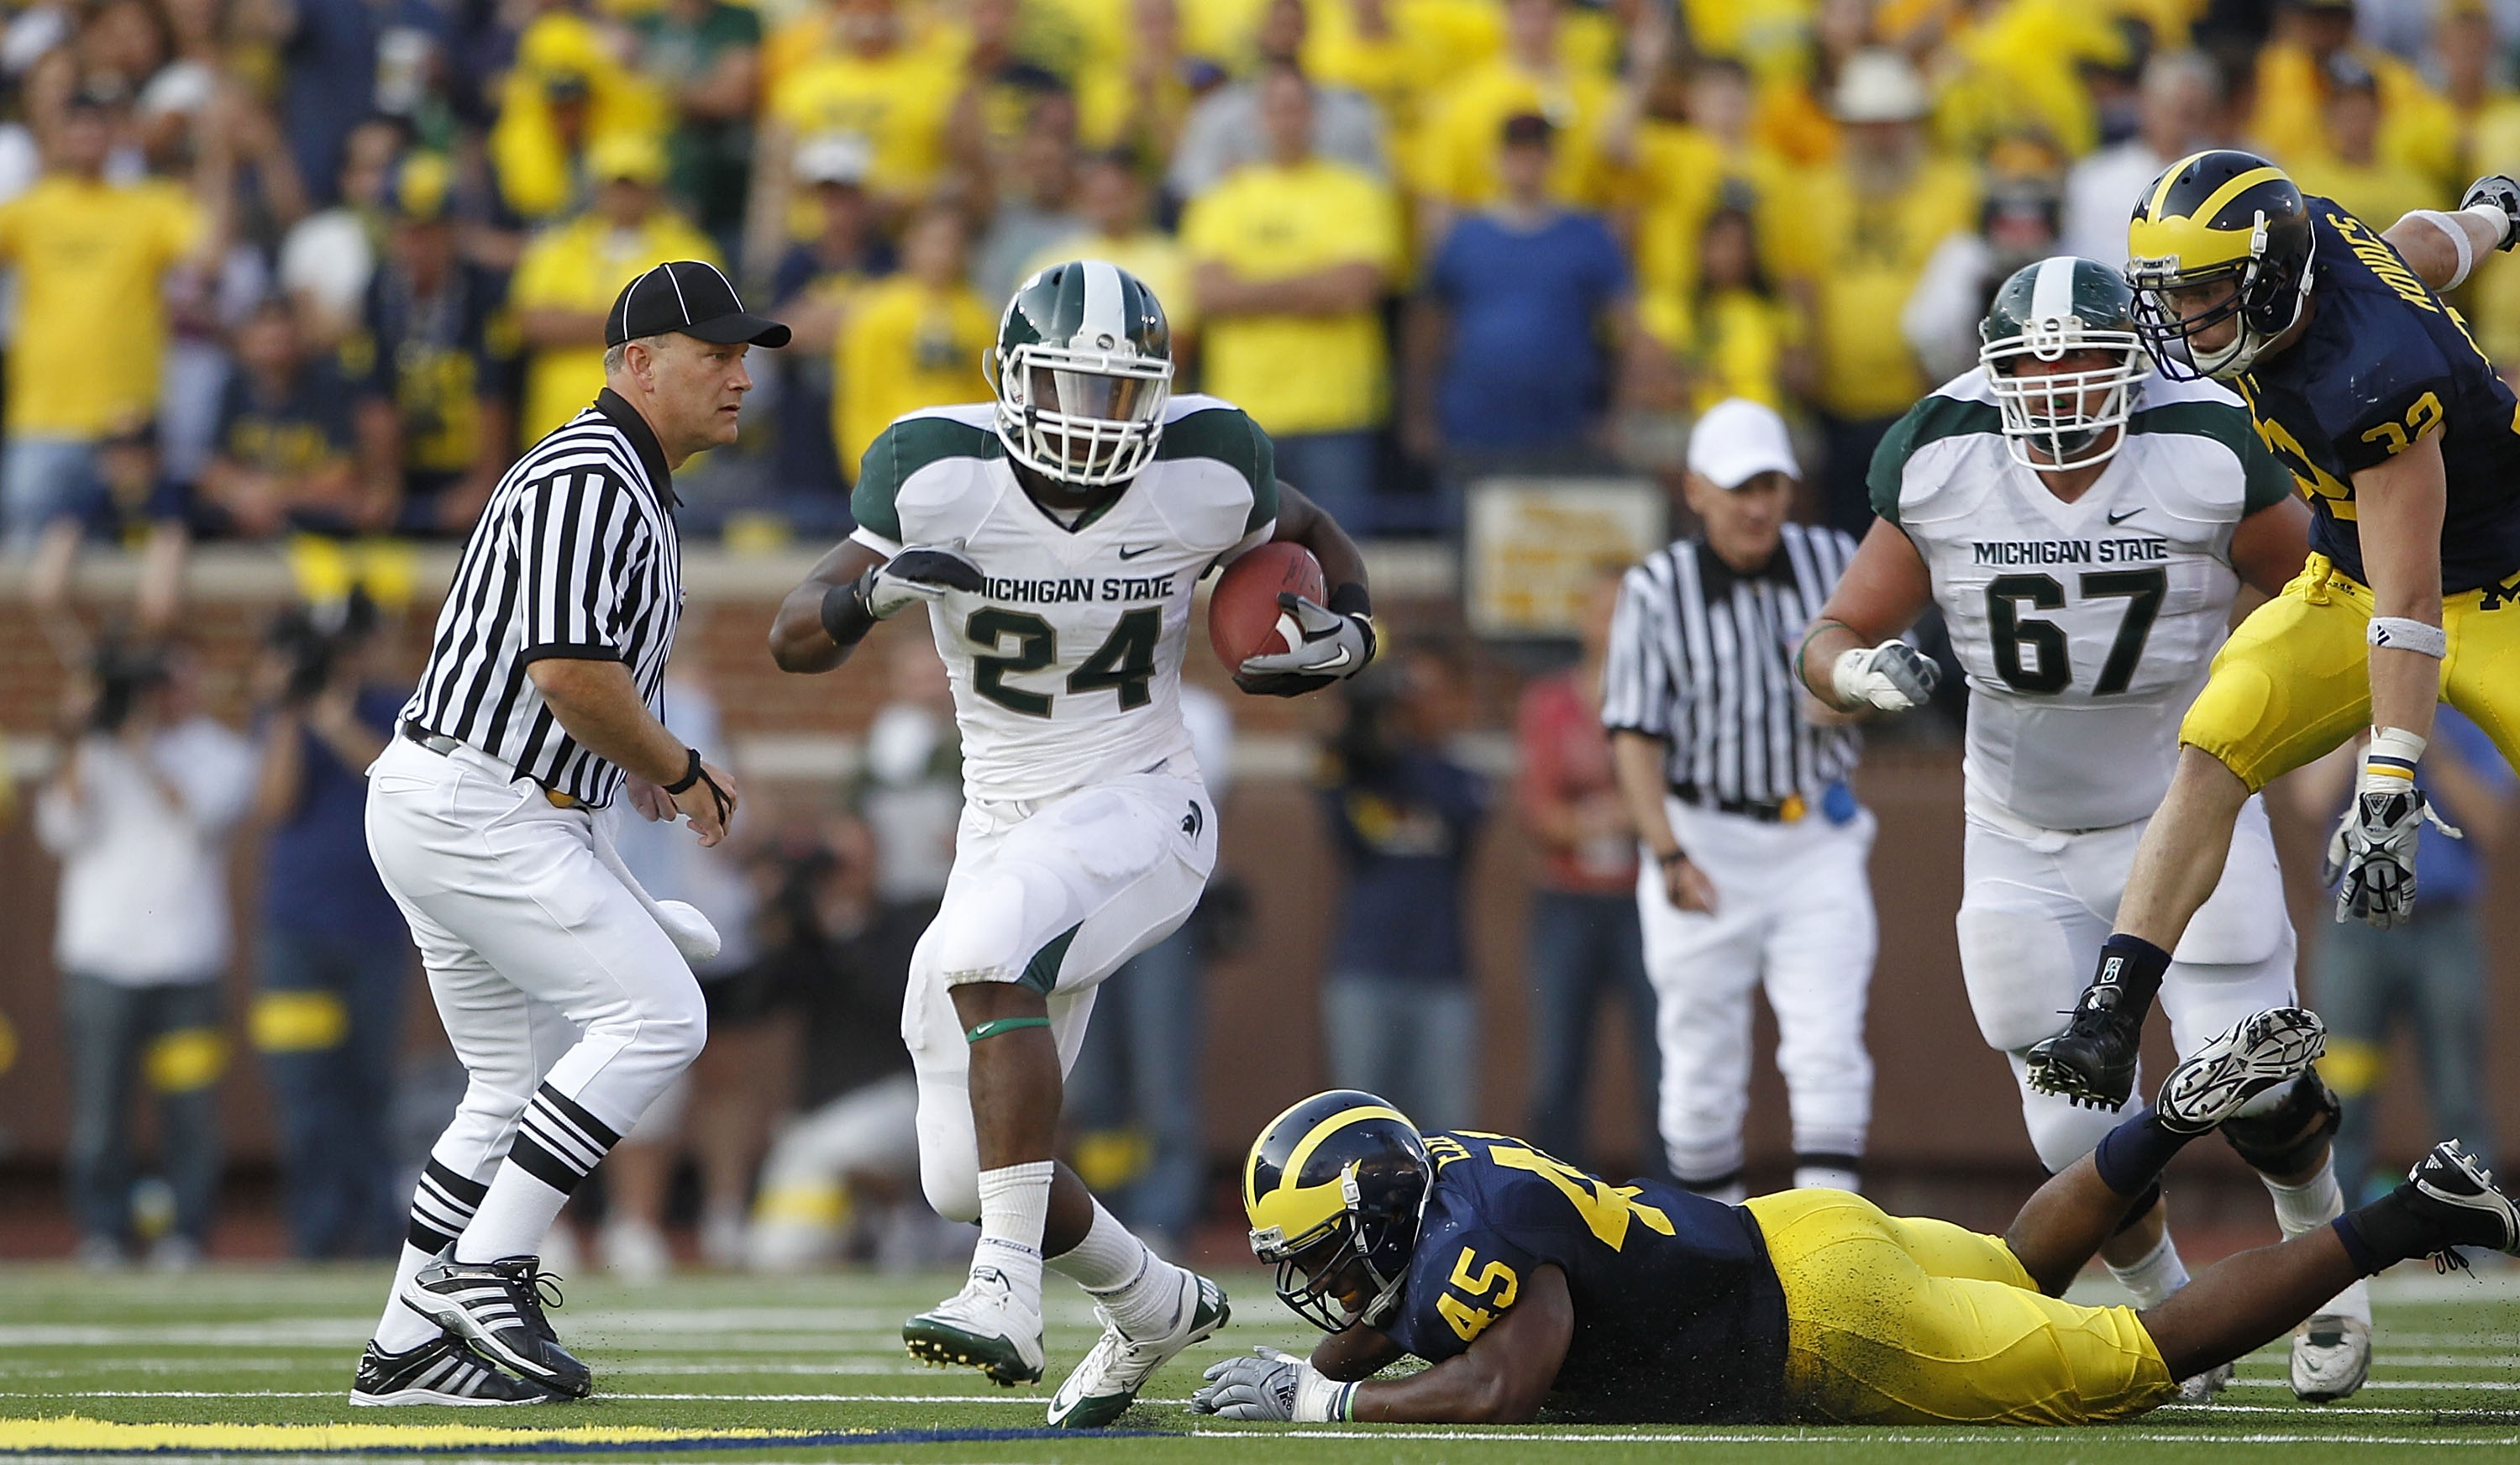 ANN ARBOR, MI - OCTOBER 09:  Le'Veon Bell #24 of the Michigan State Spartans scores on a 41 yard touchdown in the second quarter during the game against the Michigan Wolverines during the game on October 9, 2010 at Michigan Stadium in Ann Arbor, Michigan.